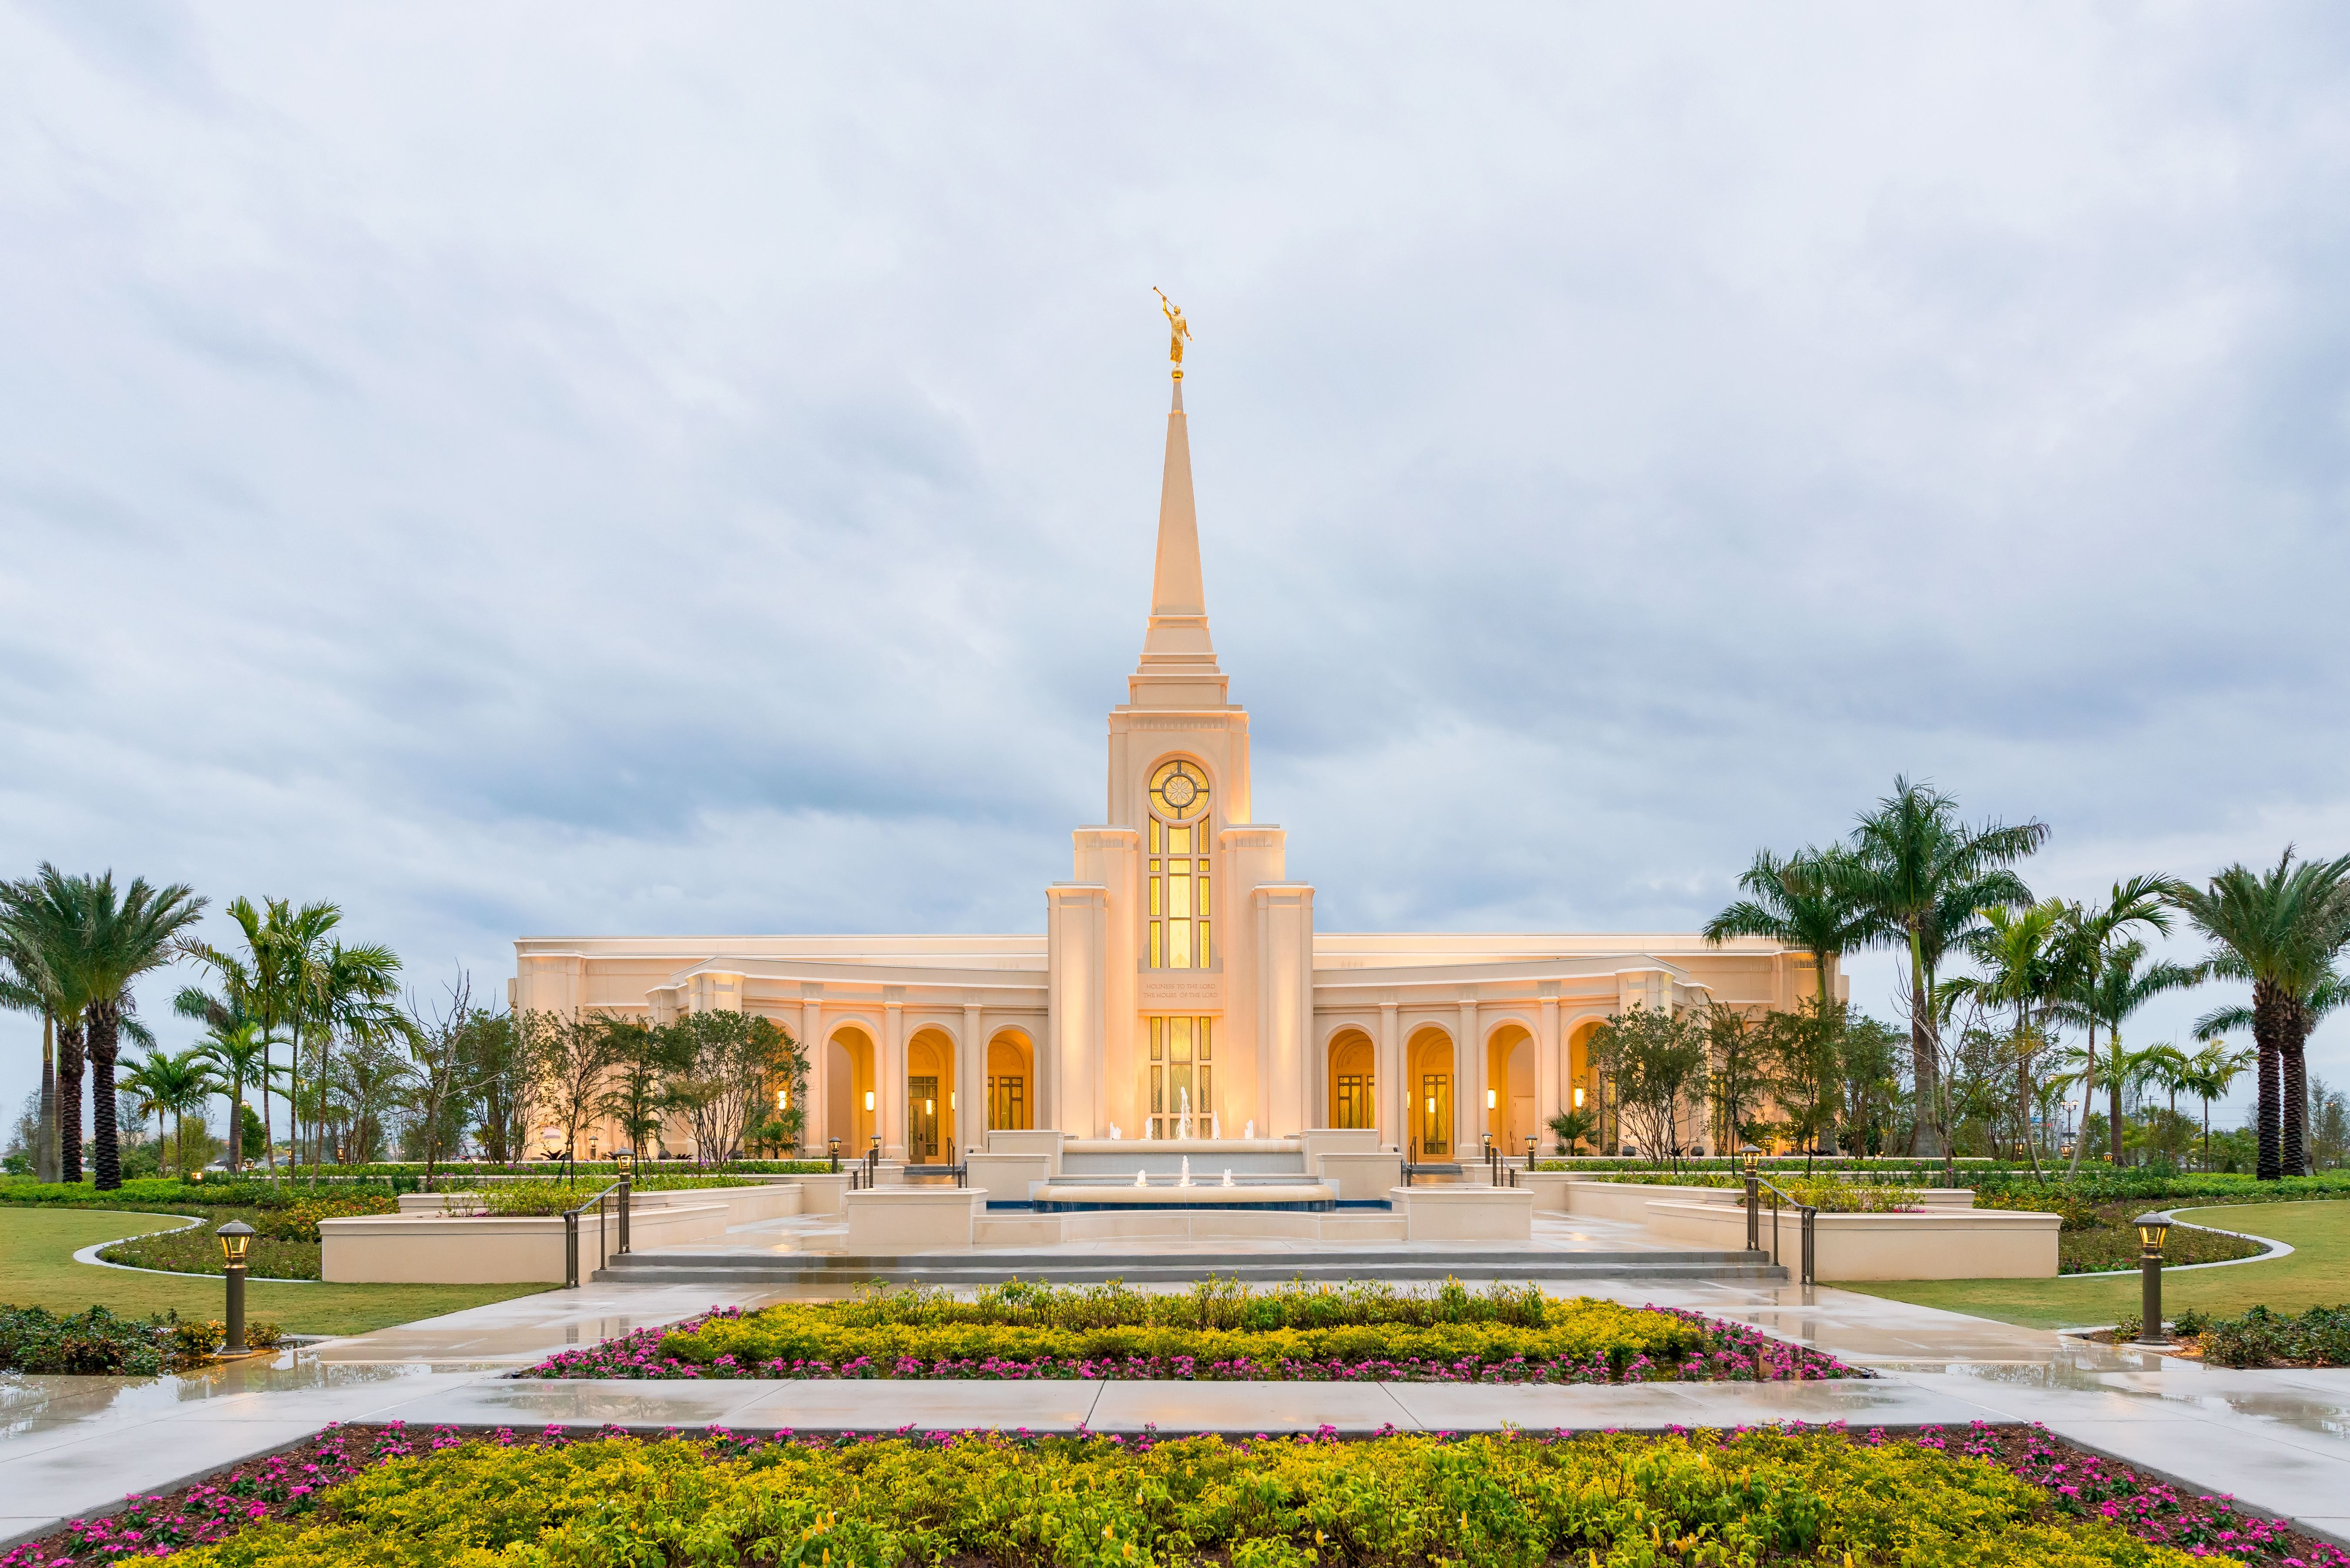 An exterior view of the Fort Lauderdale Florida Temple in the early evening.